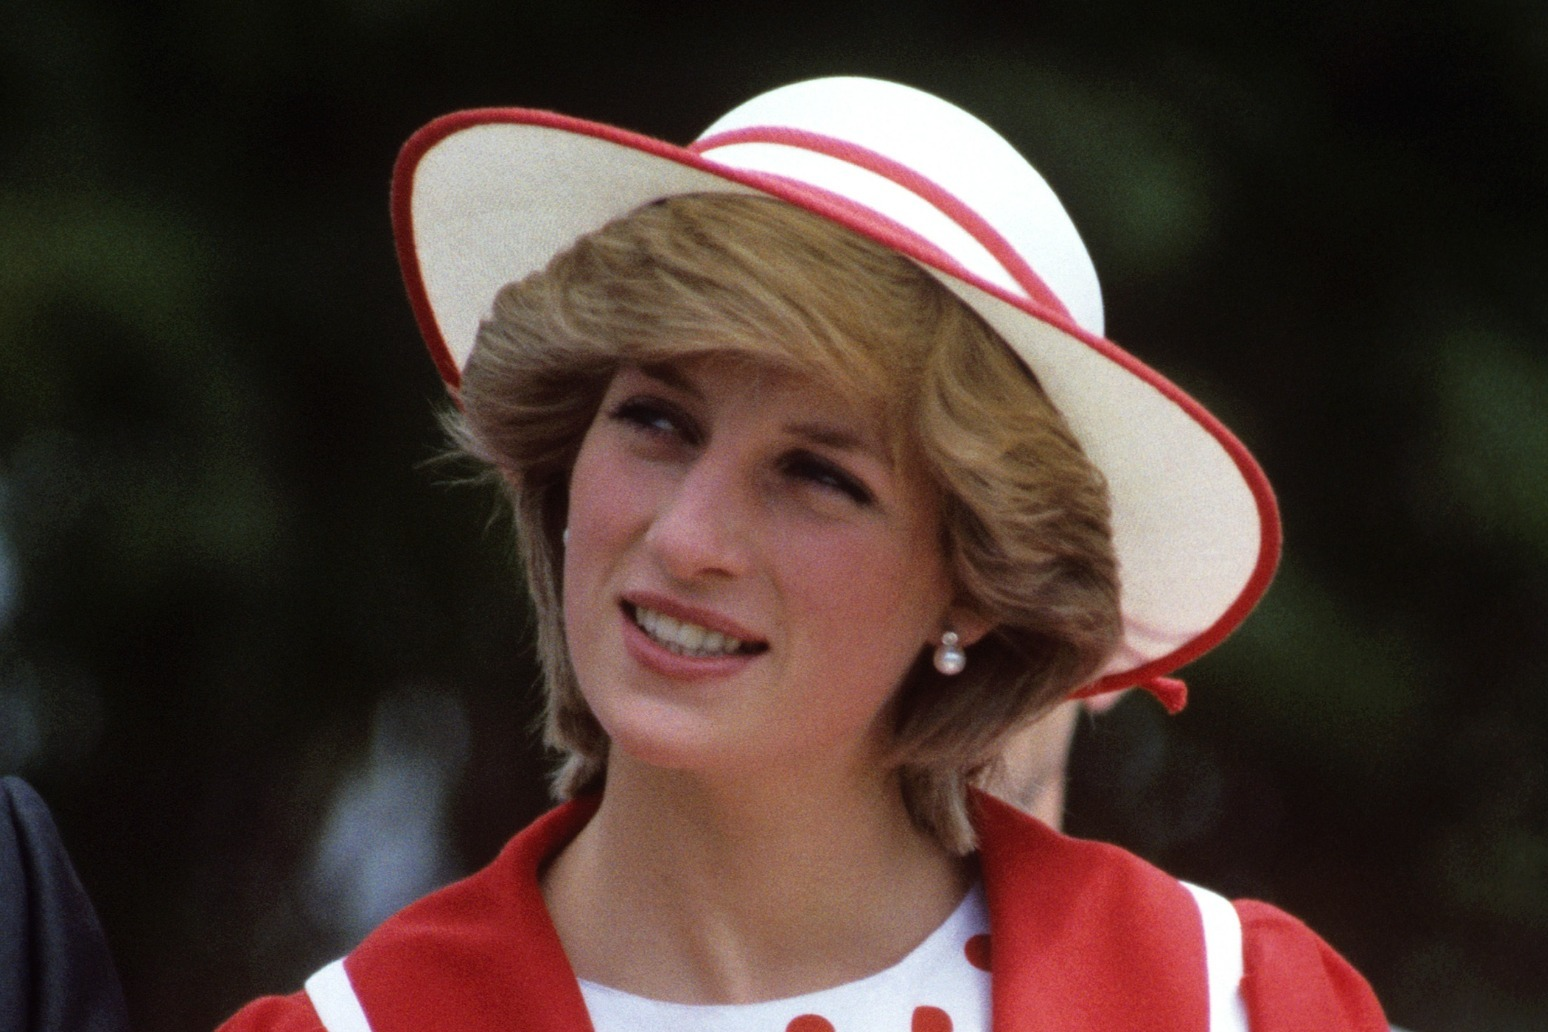 Statue of Princess Diana to be unveiled today on what would have been her 60th birthday